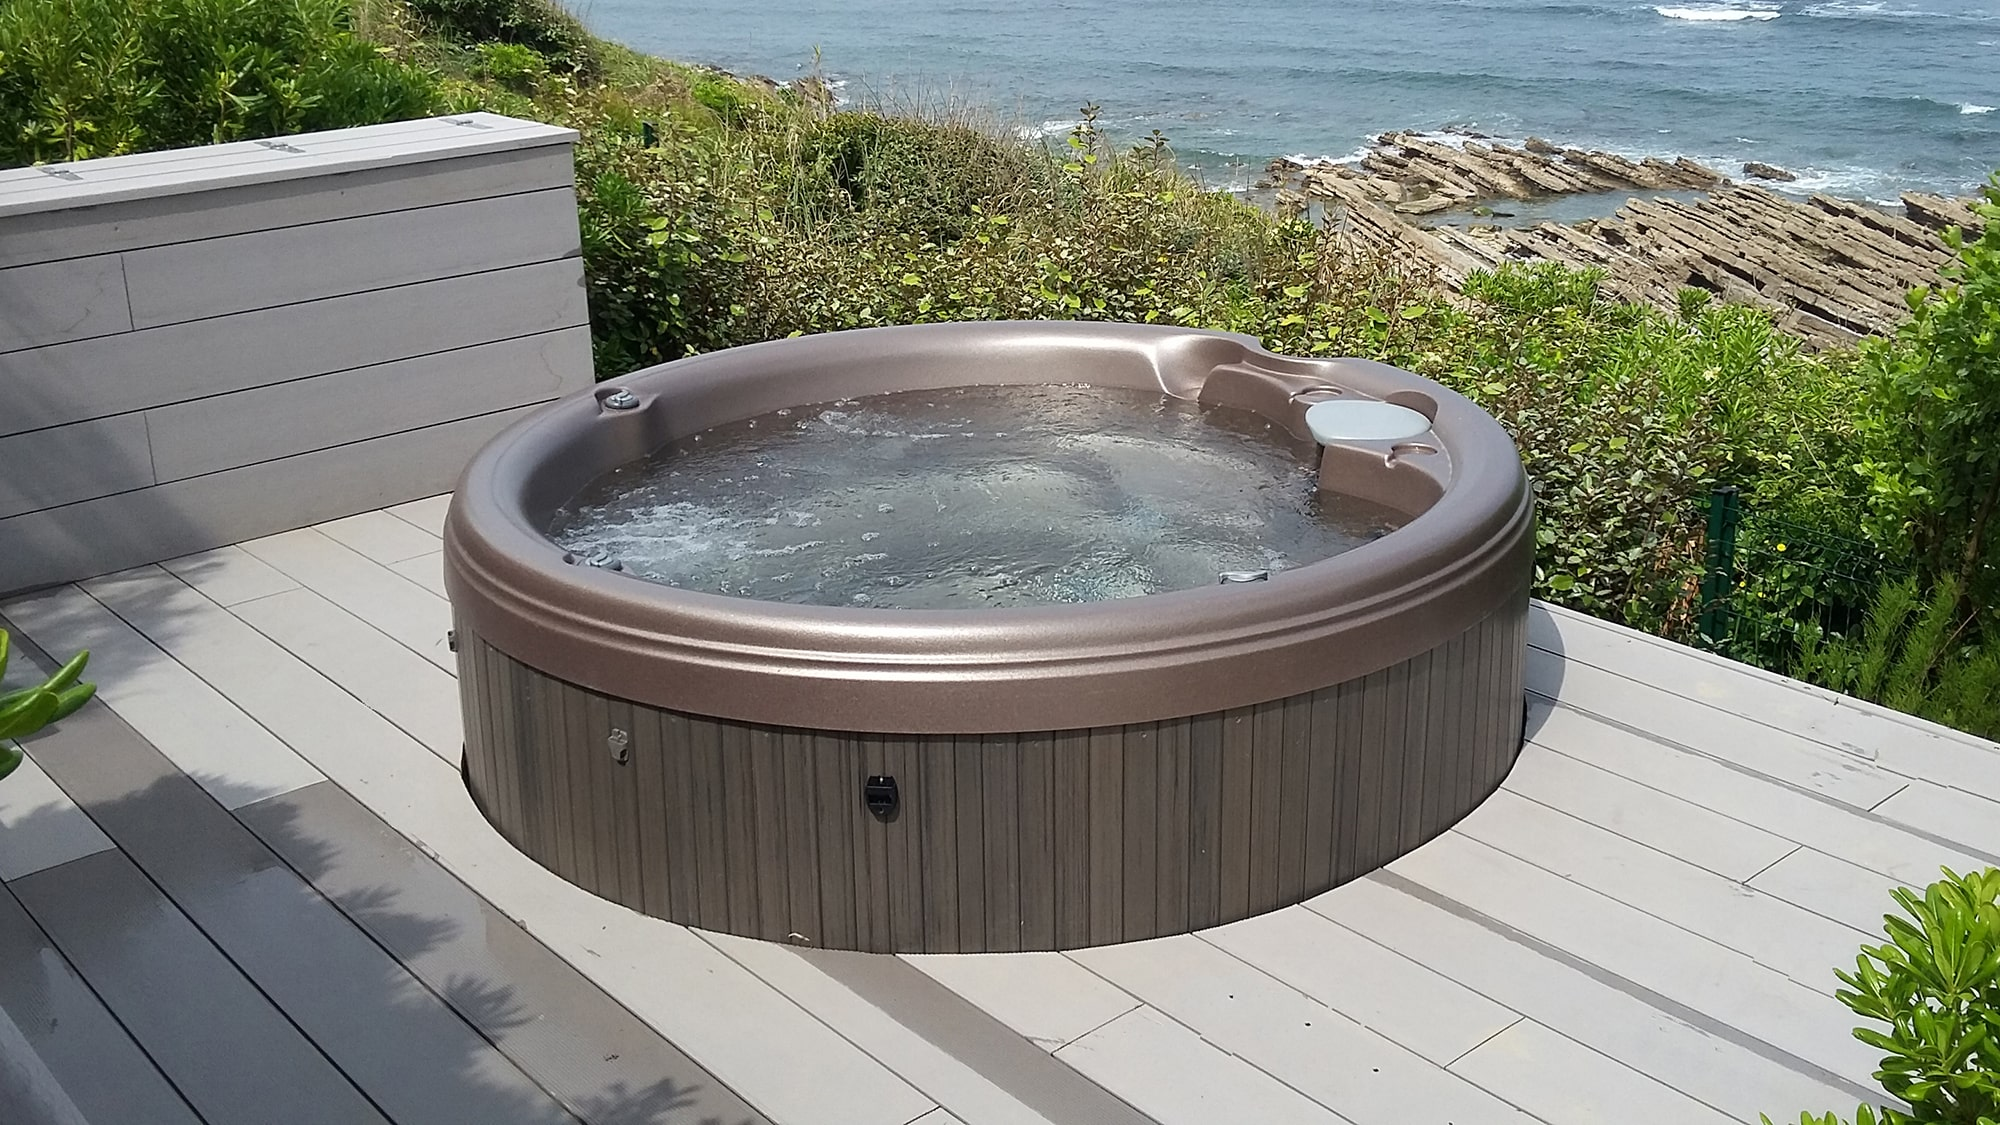 Sundance Spas round hot tub installation in Redding, California